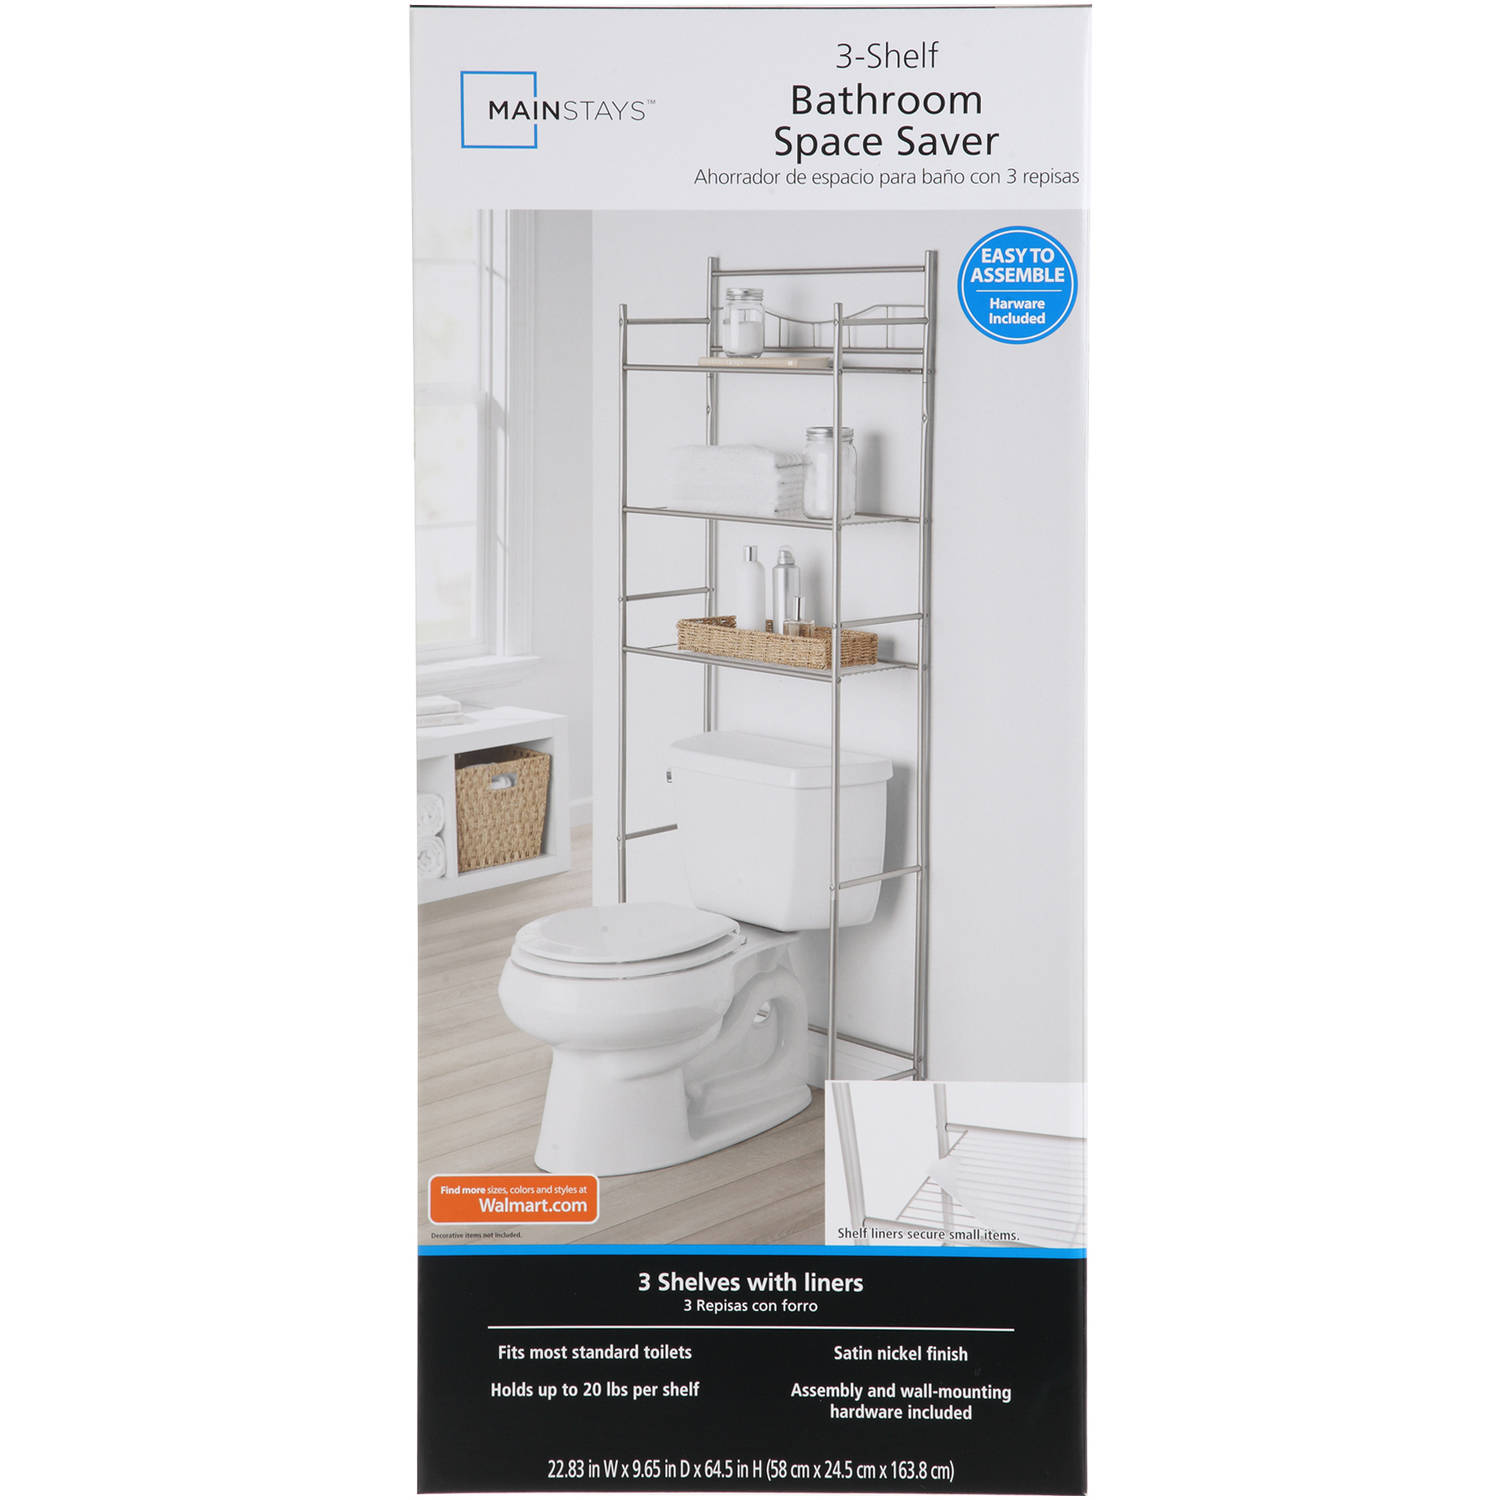 Bathroom Signs Walmart mainstays 3-shelf bathroom space saver, satin nickel finish